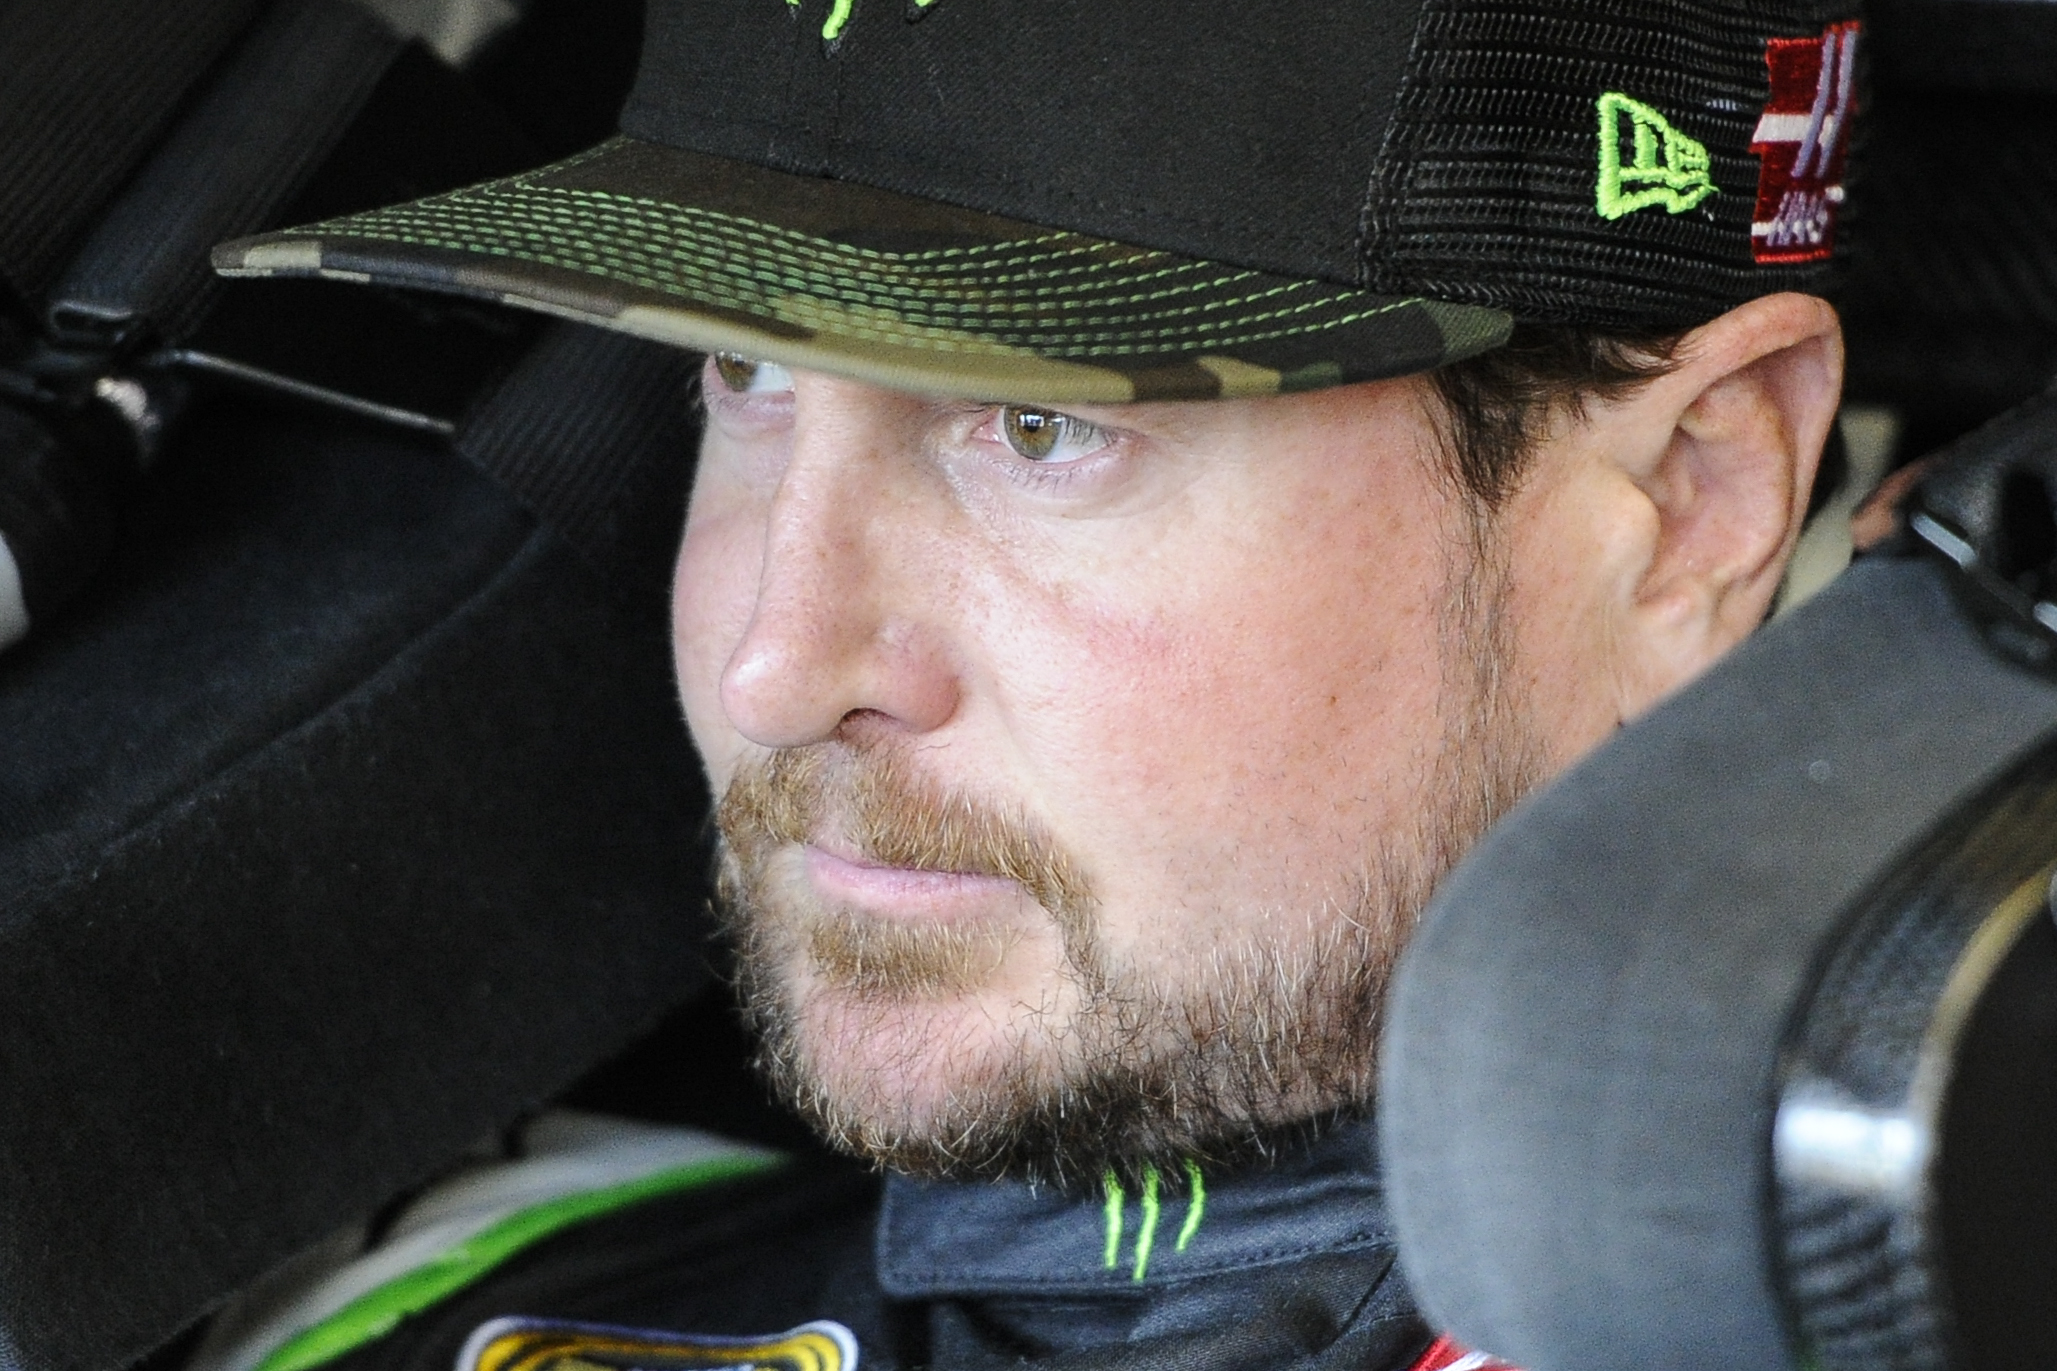 Pole winner Kurt Busch sits in his car during practice at Atlanta Motor Speedway Saturday, Feb. 27, 2016, in Hampton, Ga., for Sunday's NASCAR Sprint Cup auto race. (AP Photo/John Amis)